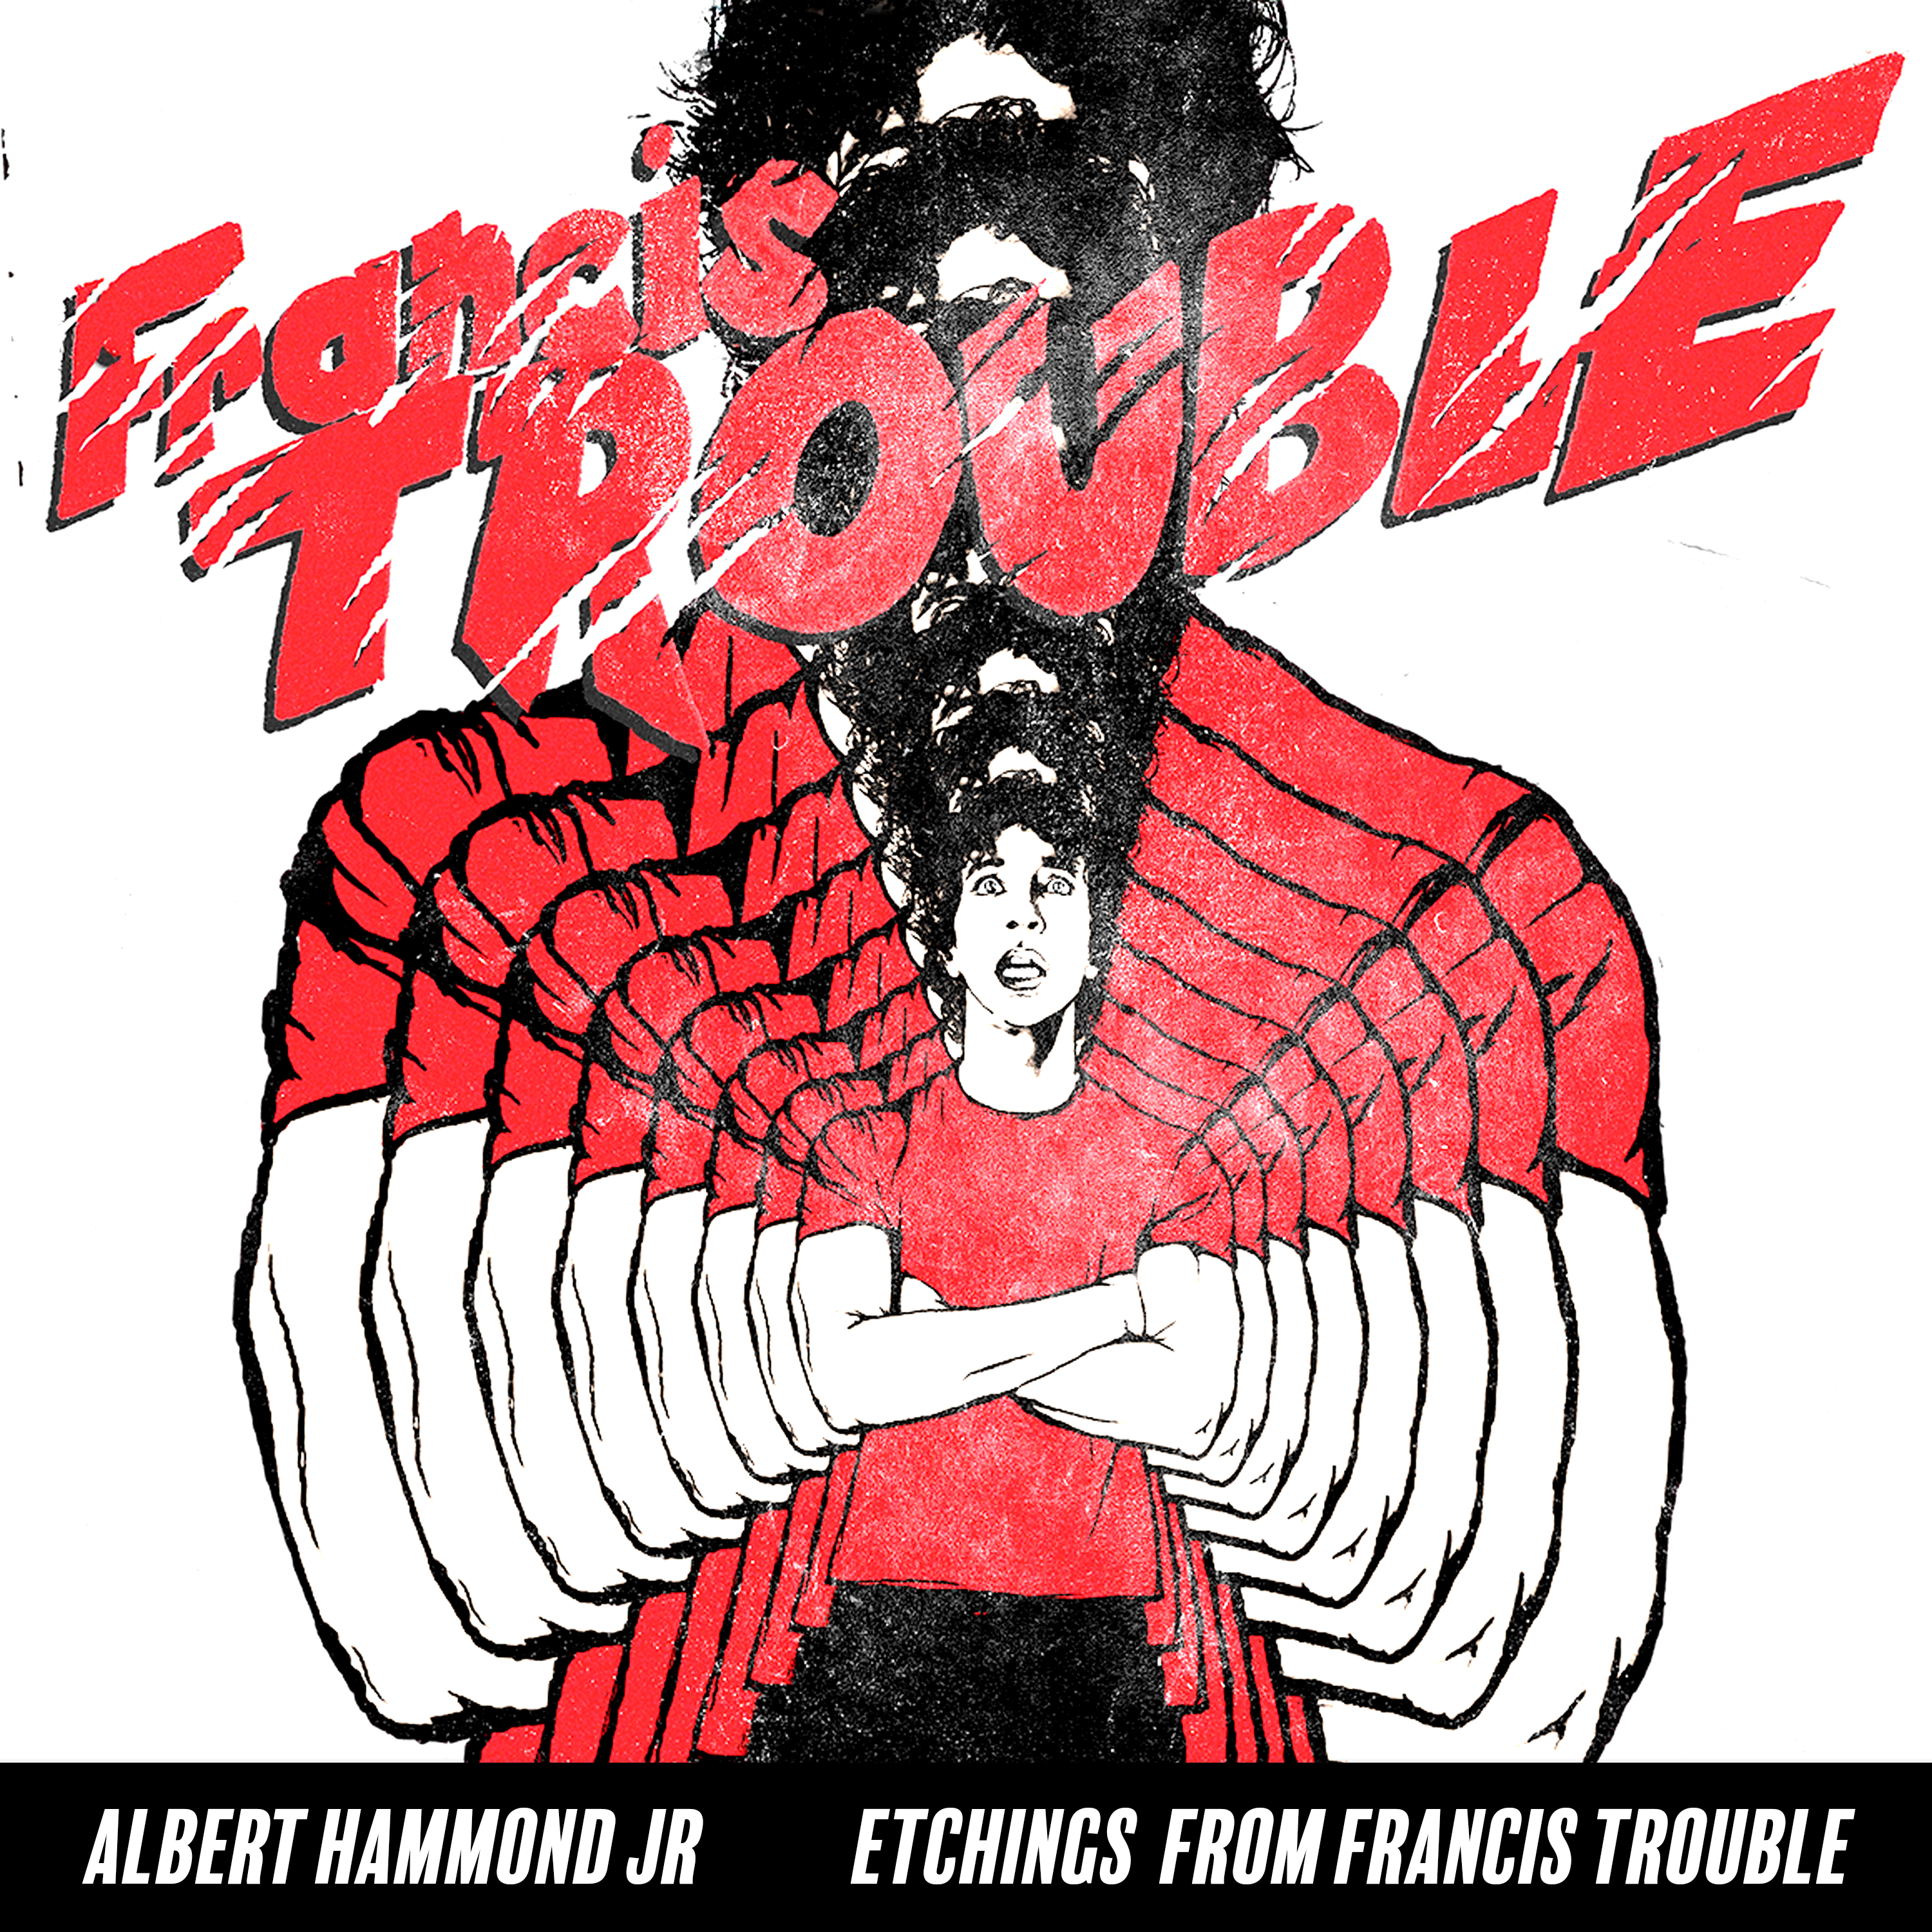 Albert Hammond, Jr. - Etchings From Francis Trouble